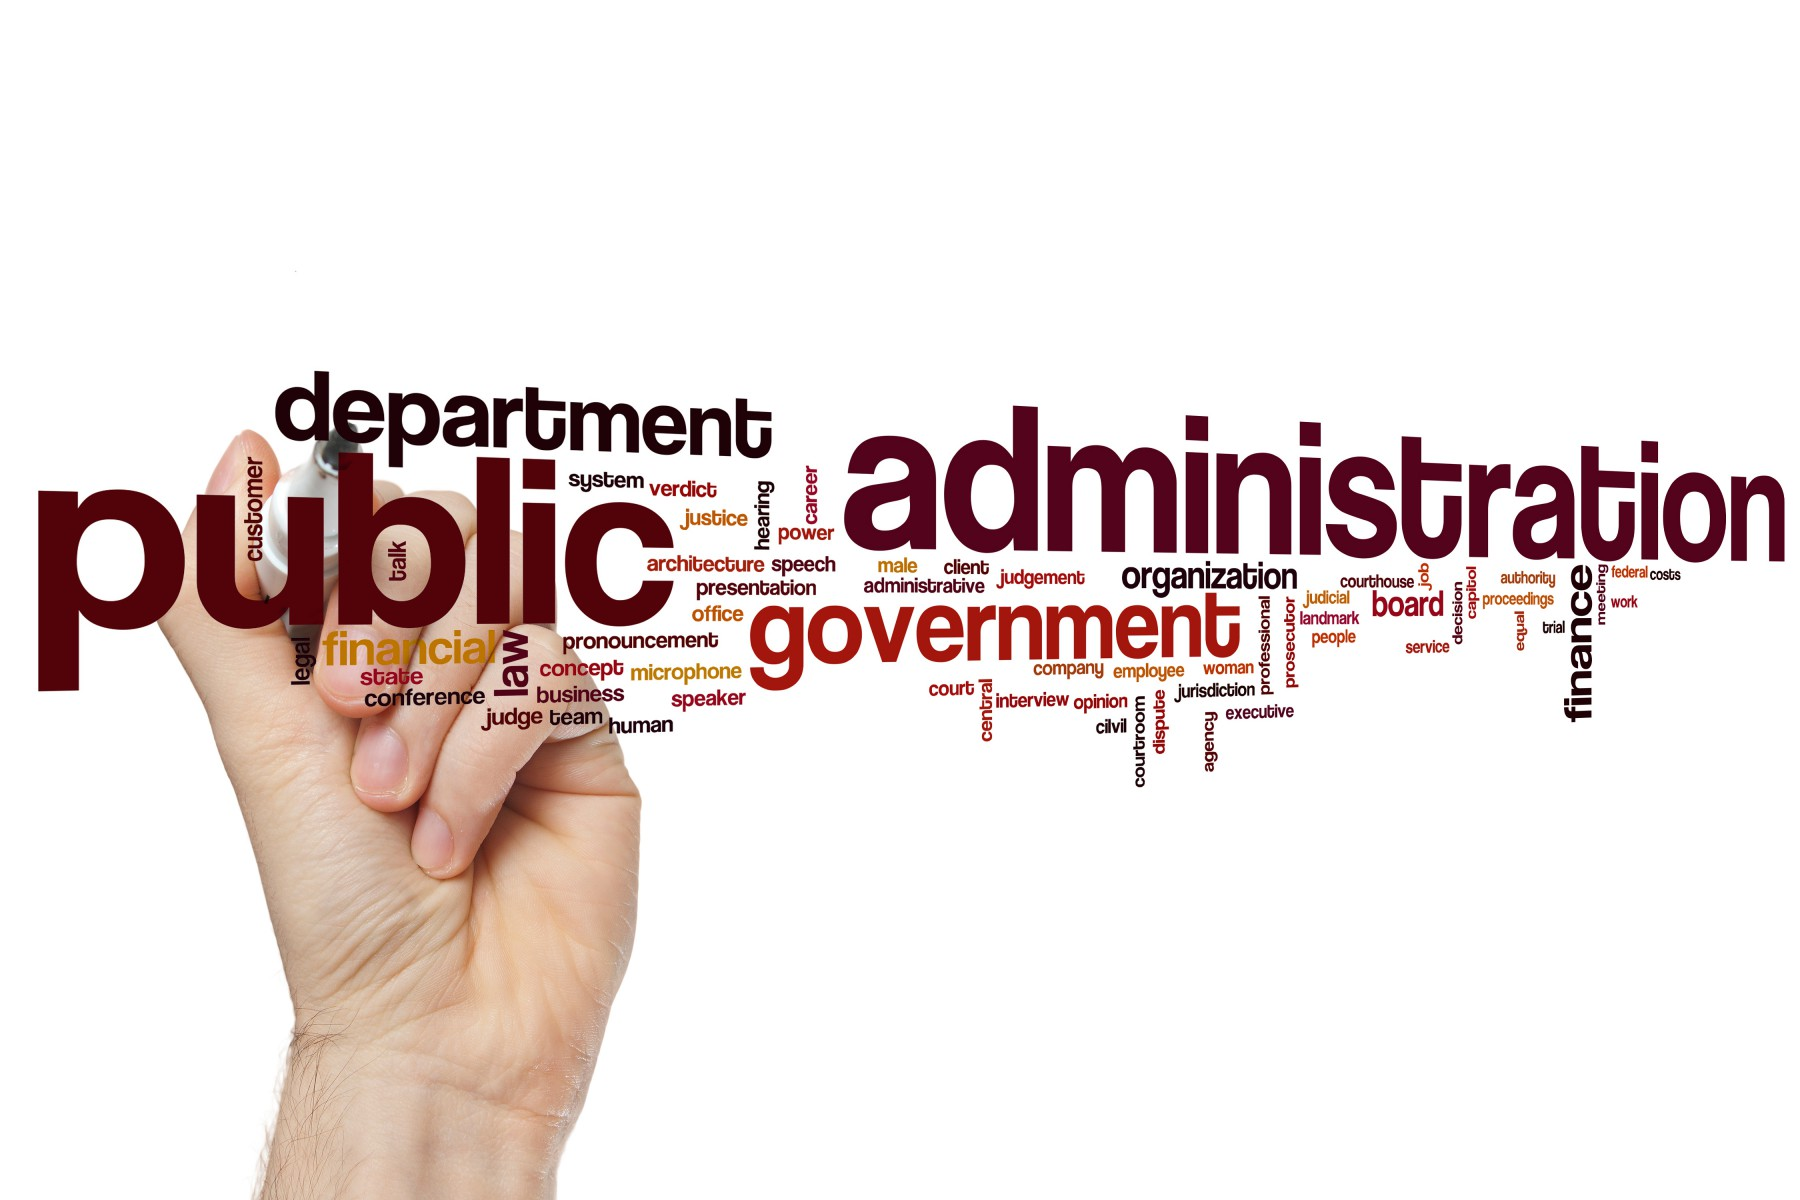 Exciting career options in public administration